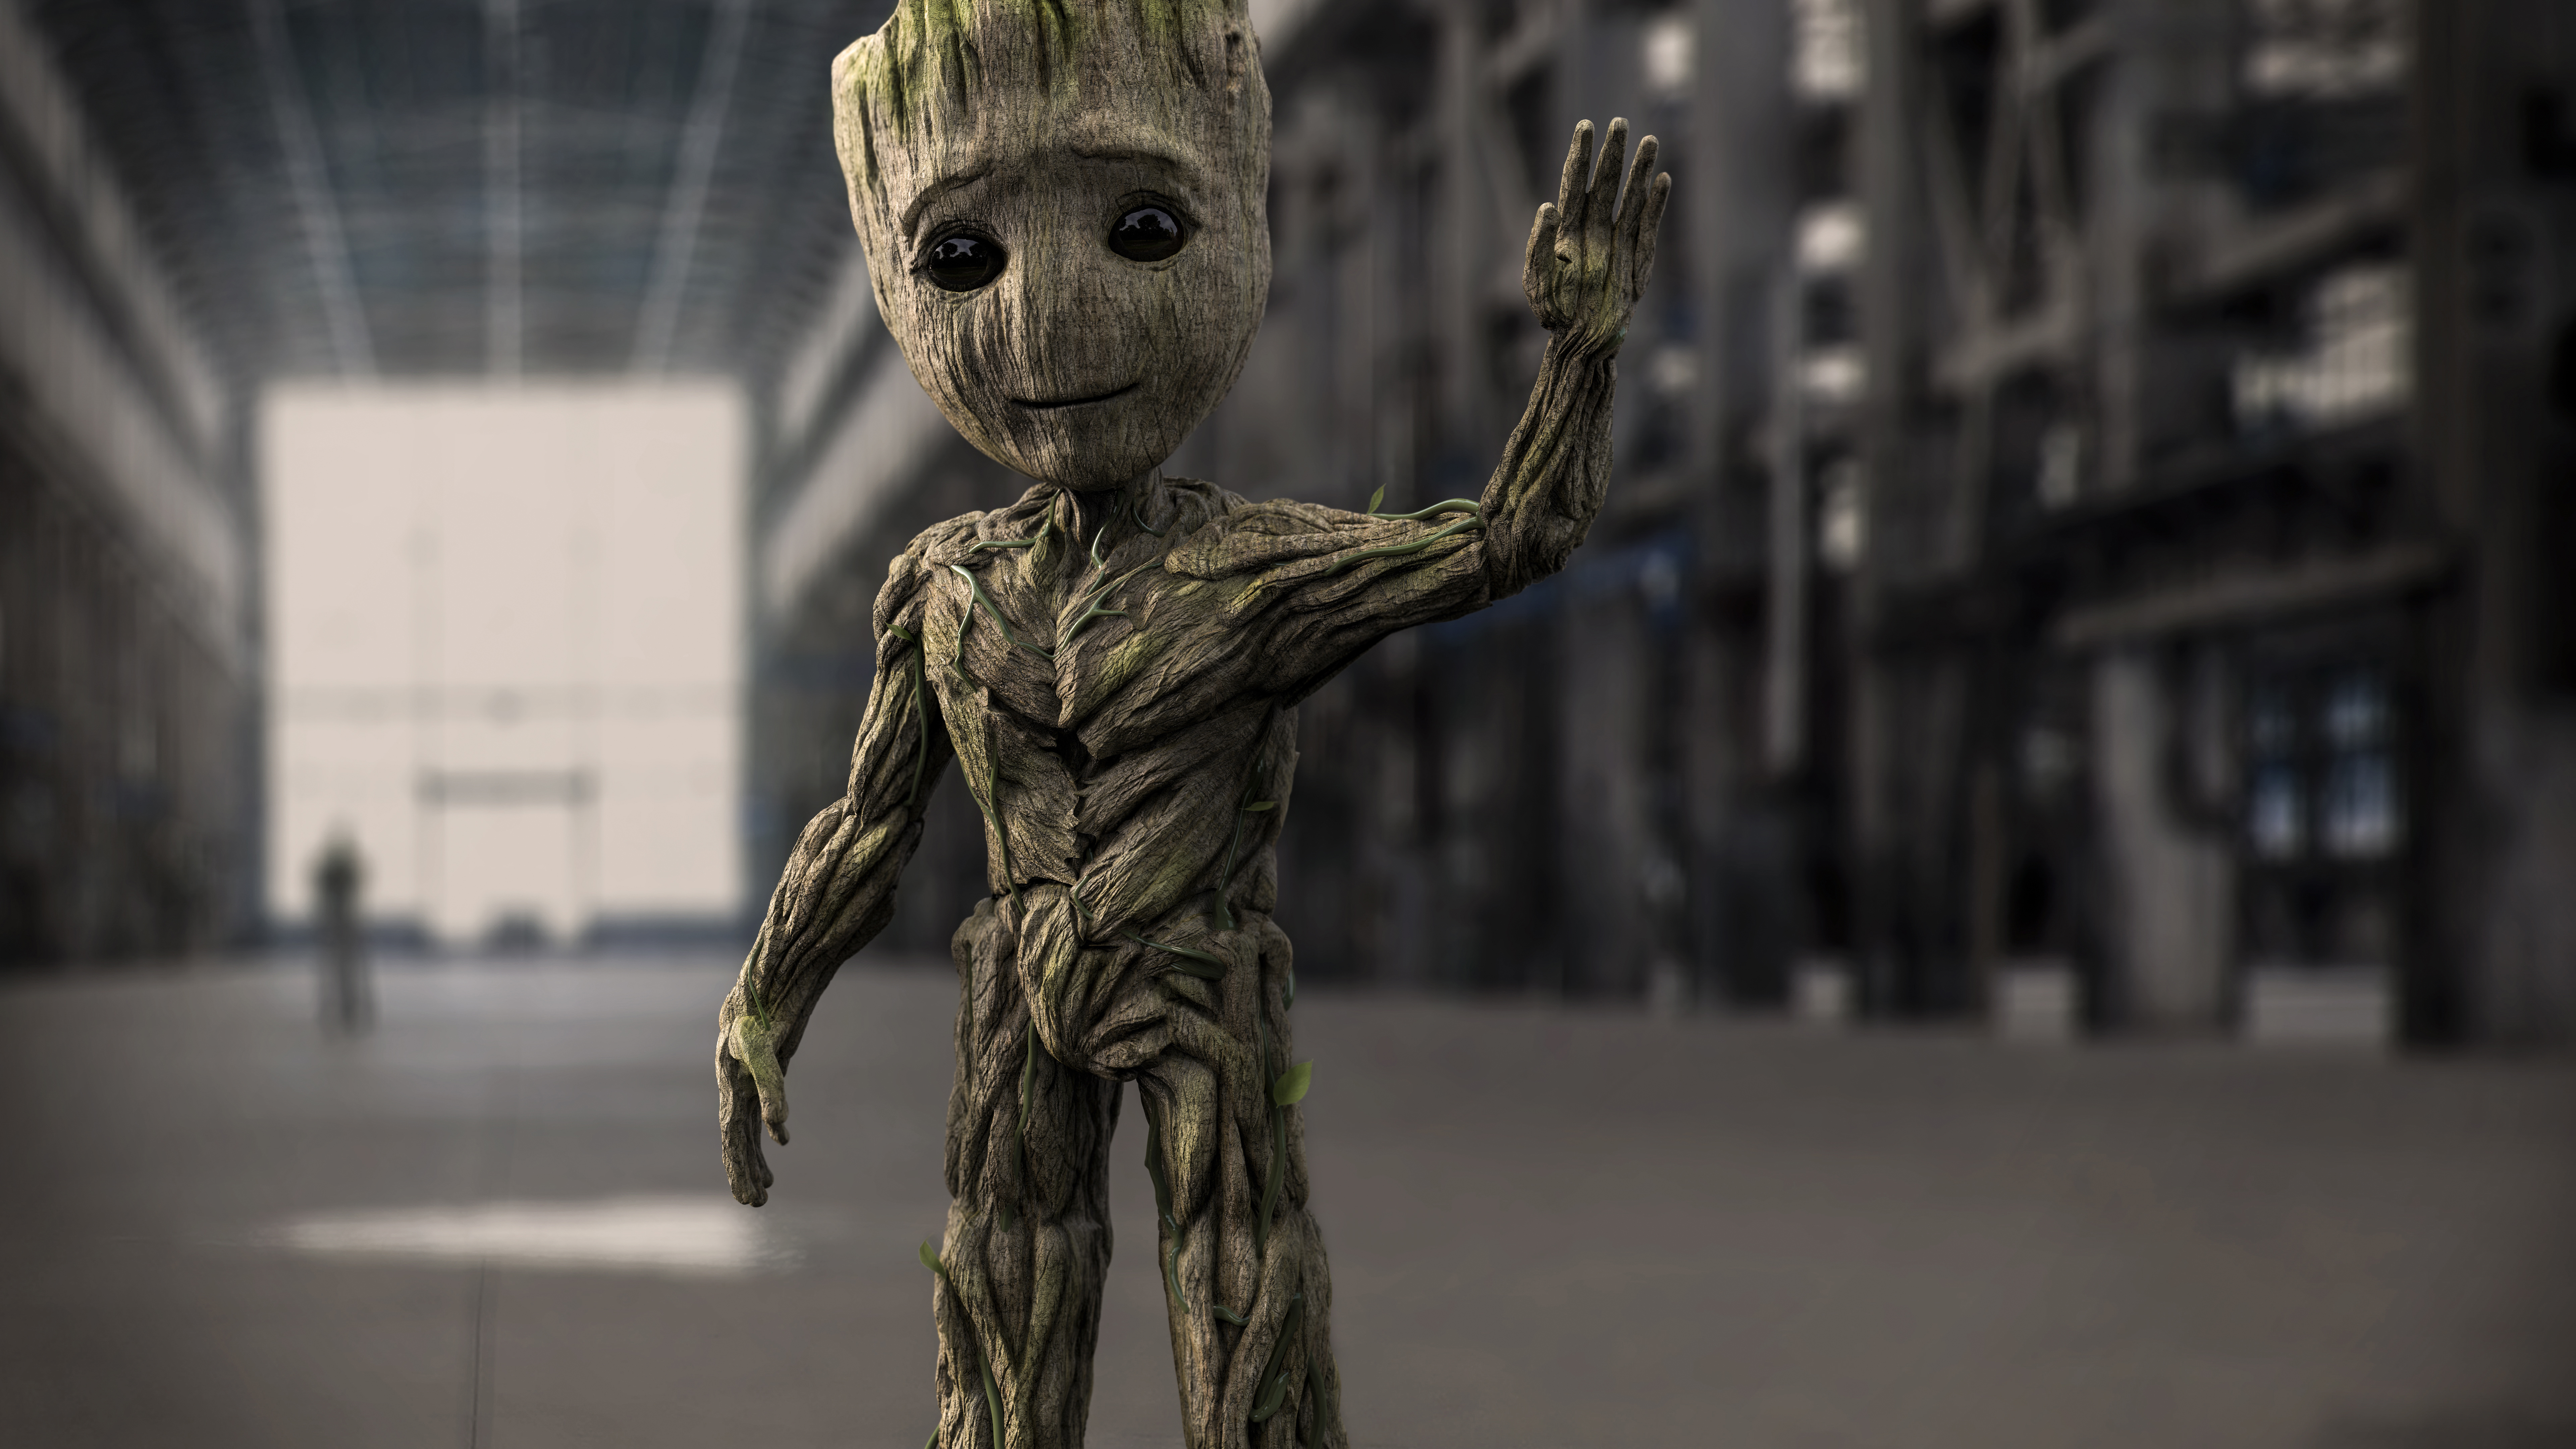 7680x4320 Baby Groot 8k 8k Hd 4k Wallpapers Images Backgrounds Photos And Pictures